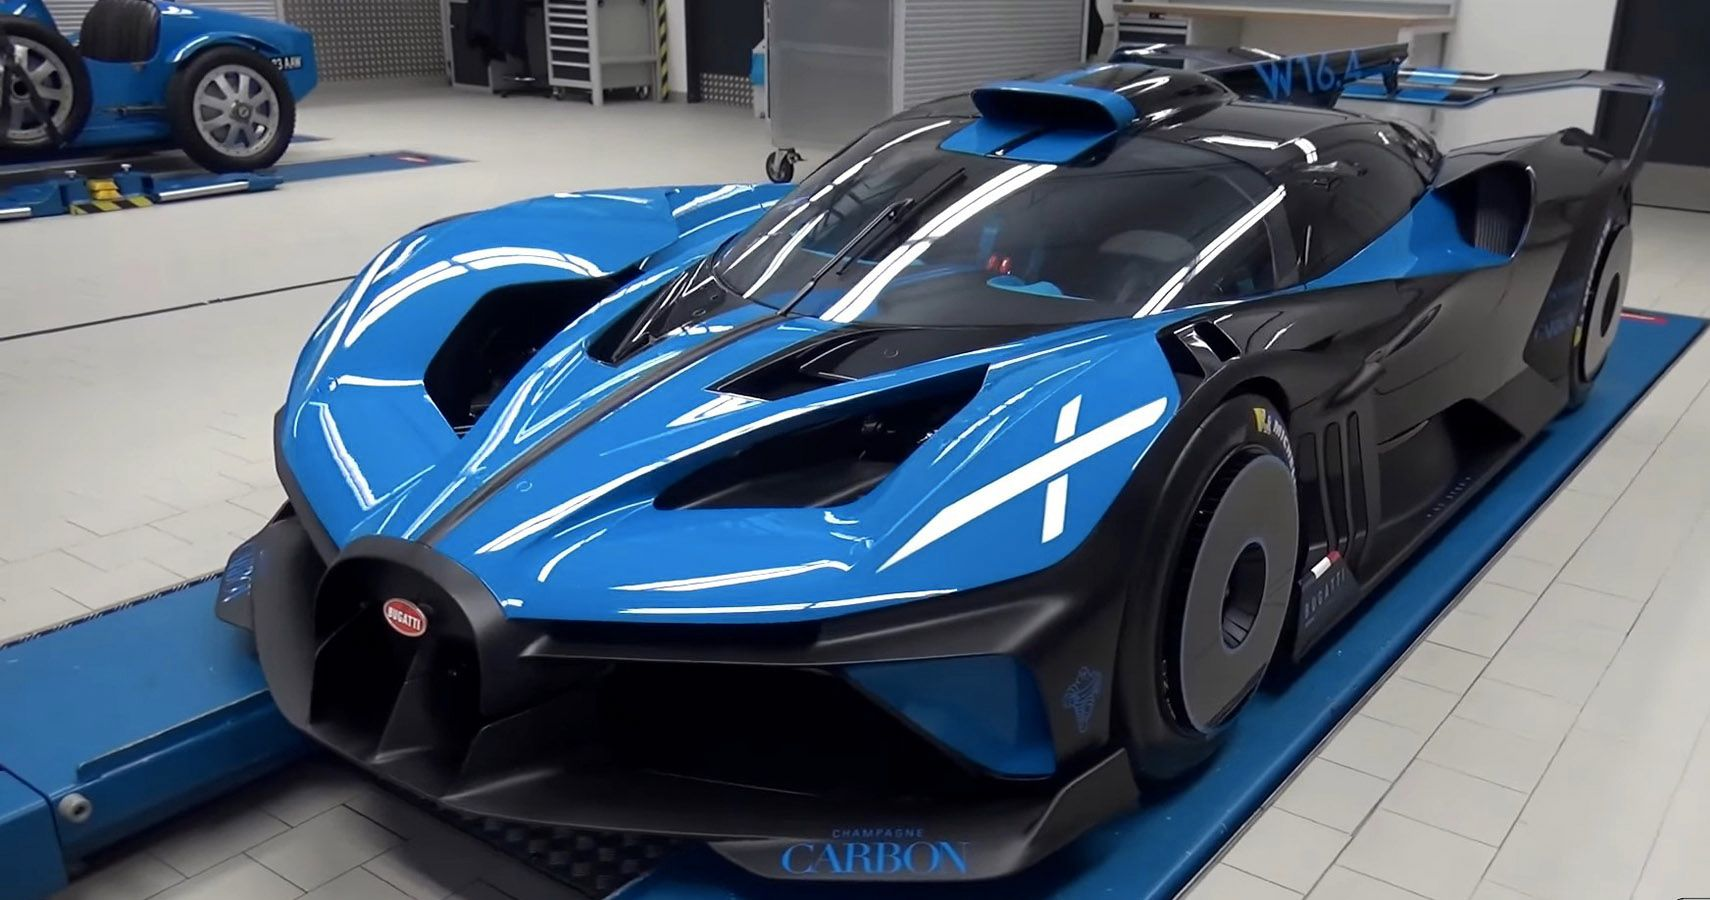 Bugatti Claims New Bolide Hypercar Will Smash 300 MPH Record